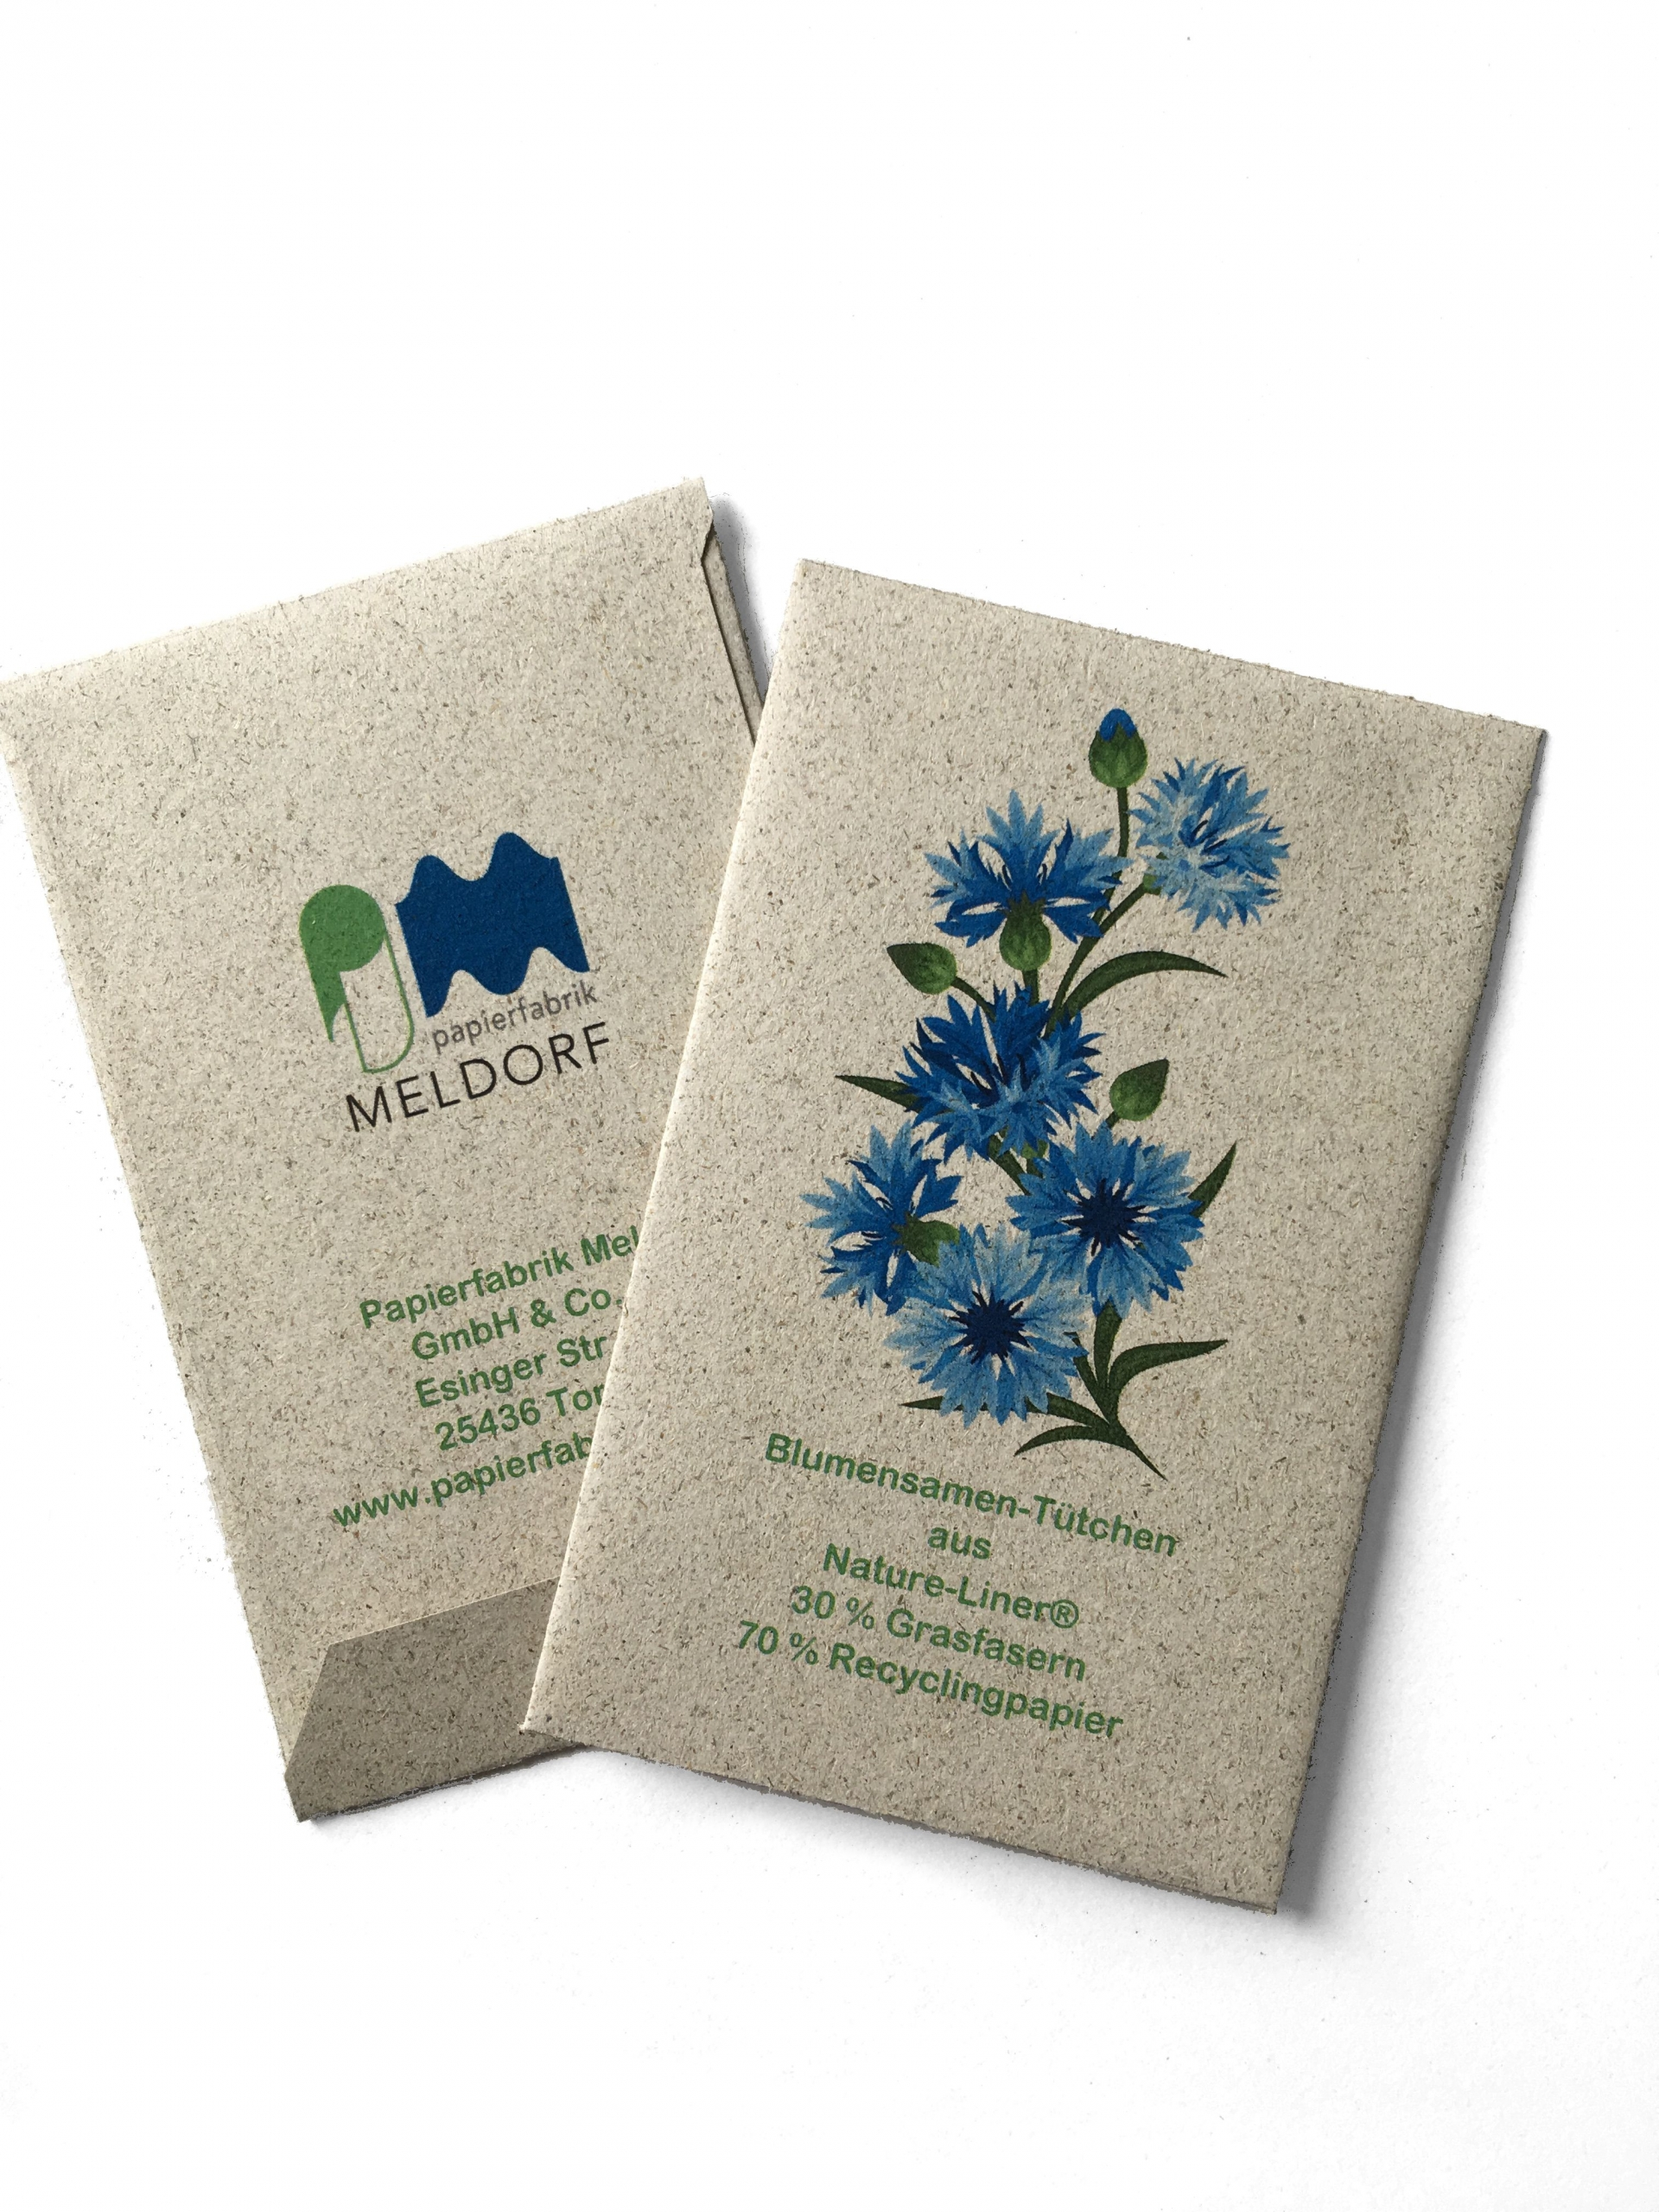 seed bags made of Nature-LIner